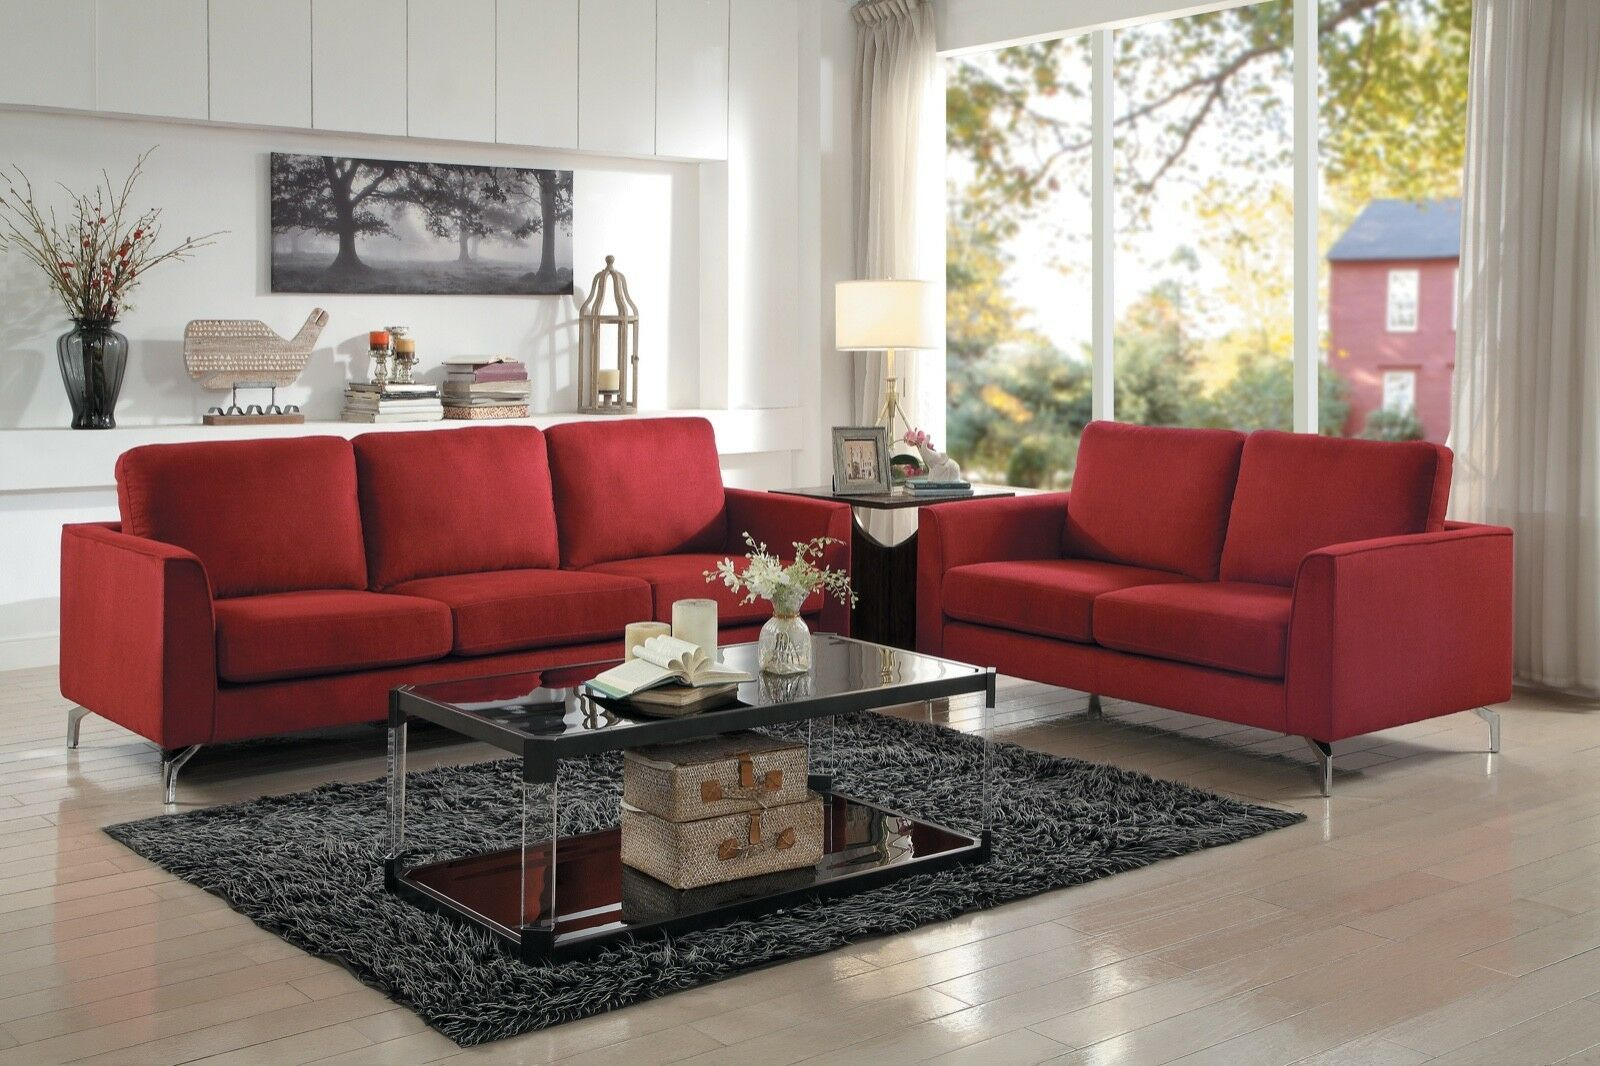 Contemporary Red Sofa Couch Loveseat Living Room Furniture Set